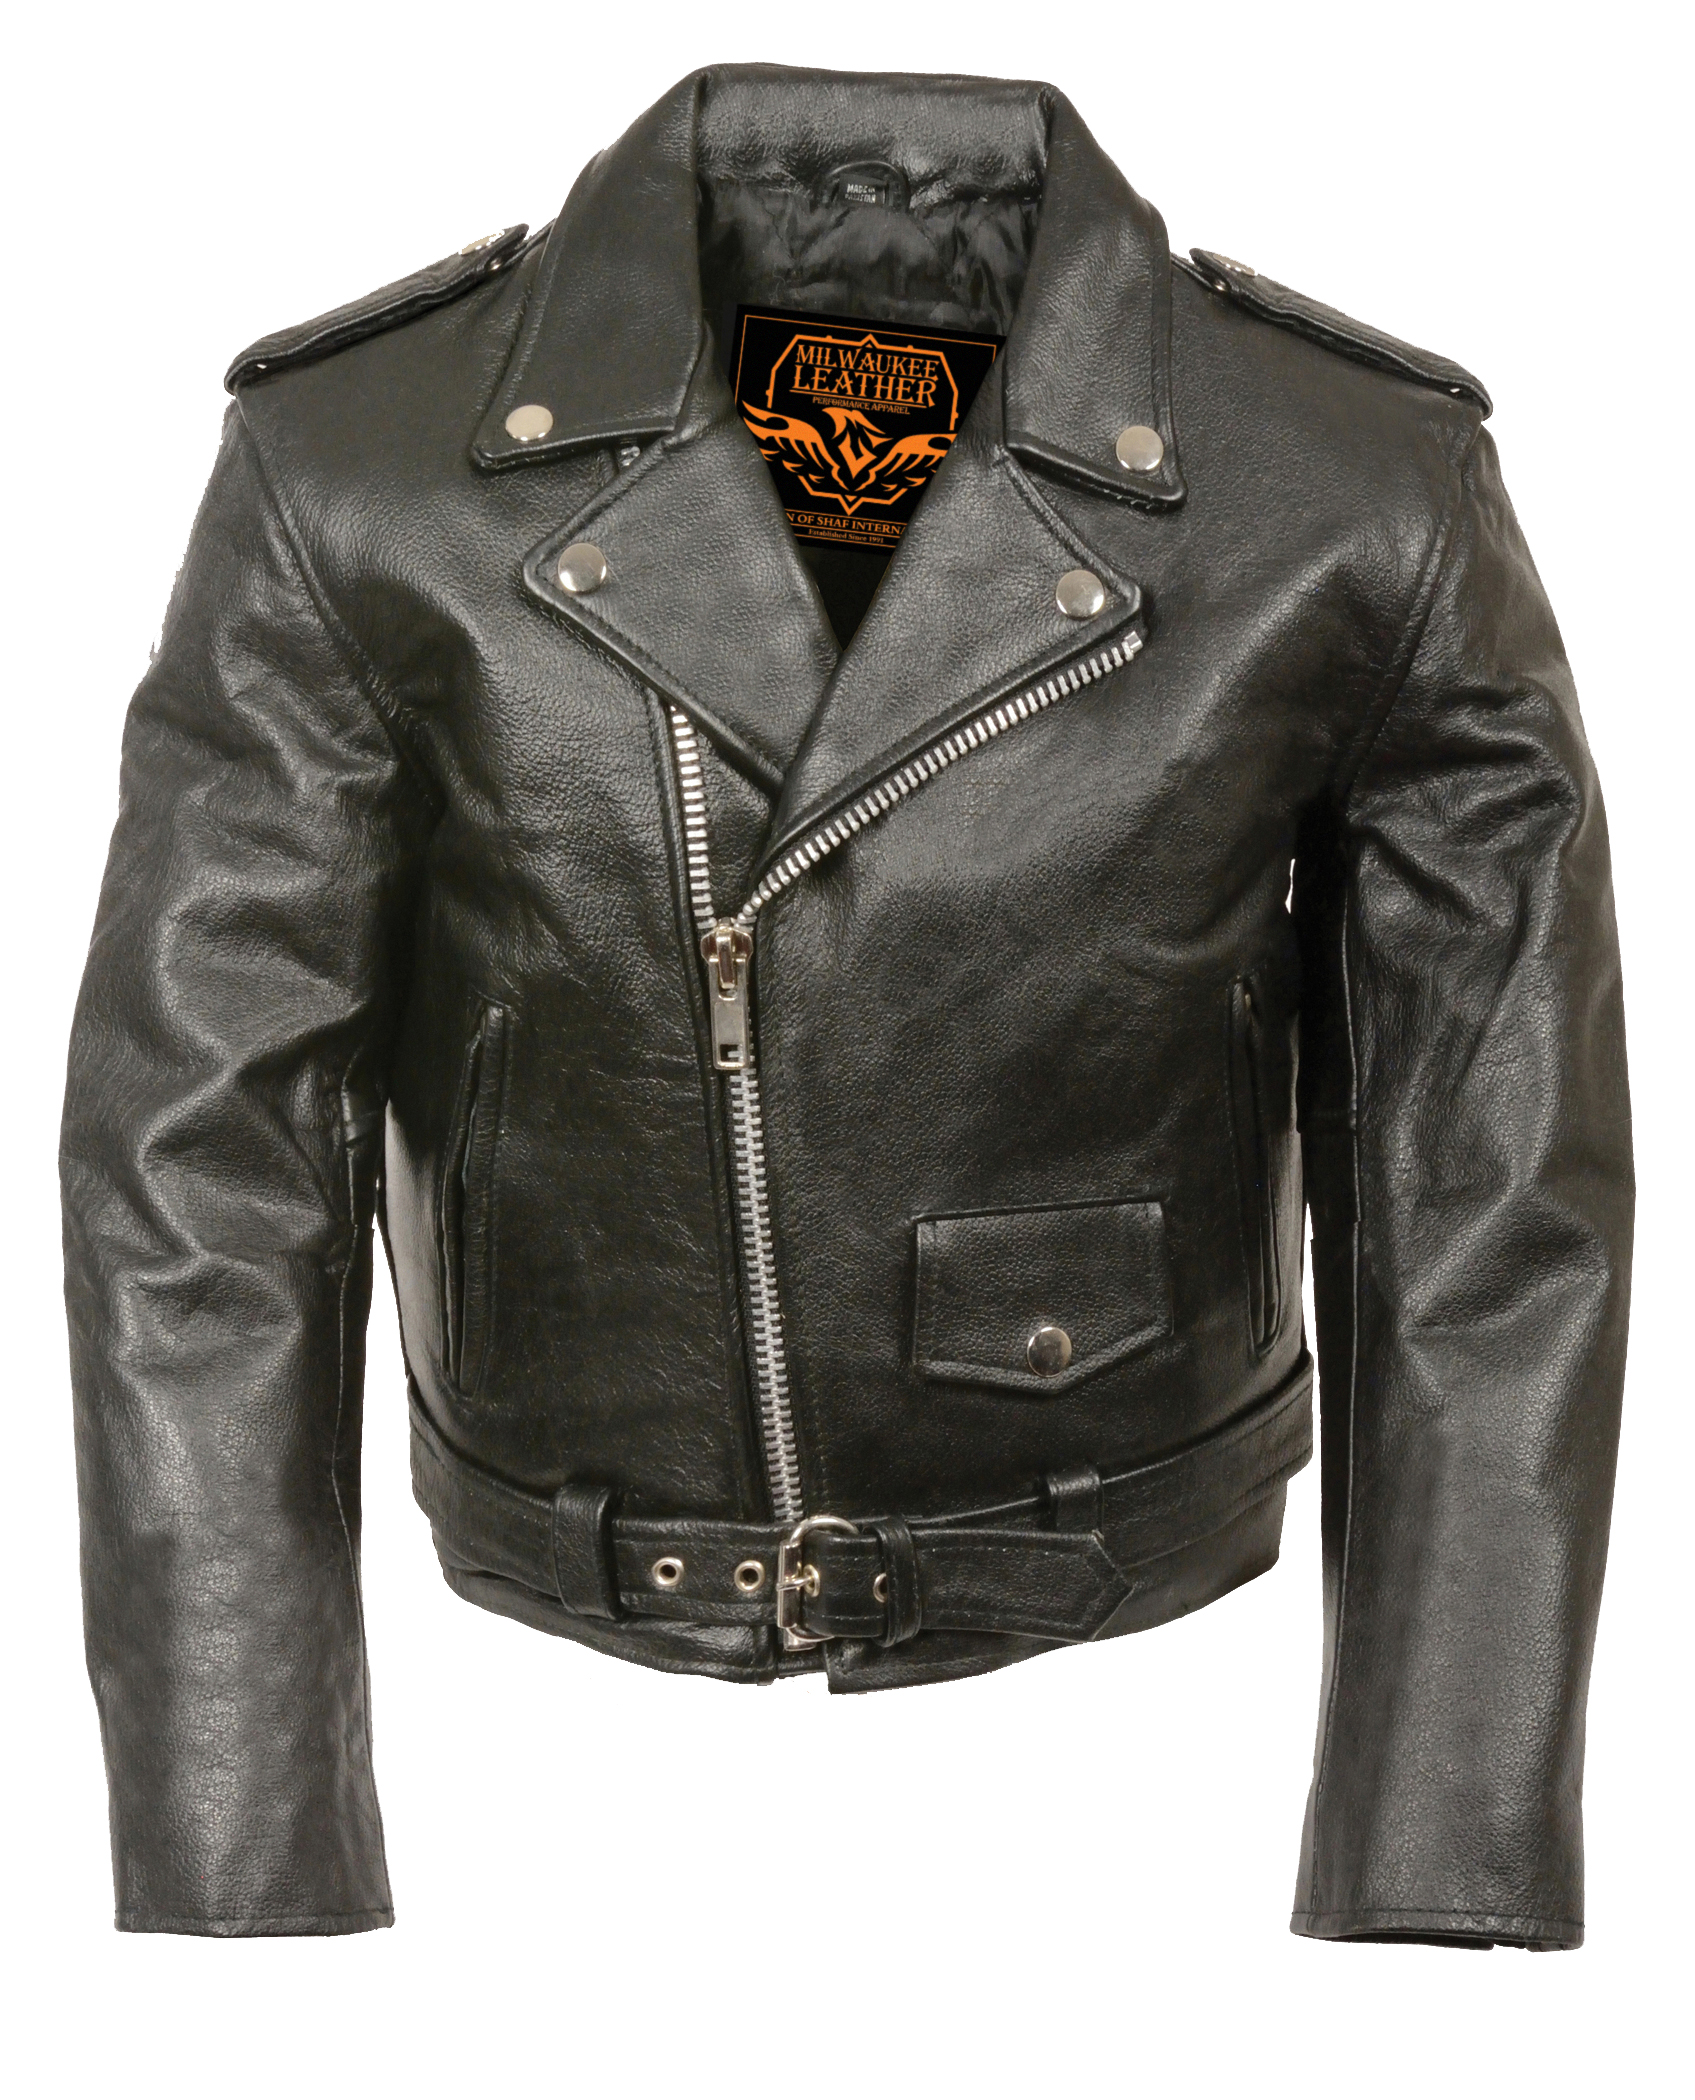 Toddlers Traditional Style Motorcycle Jacket